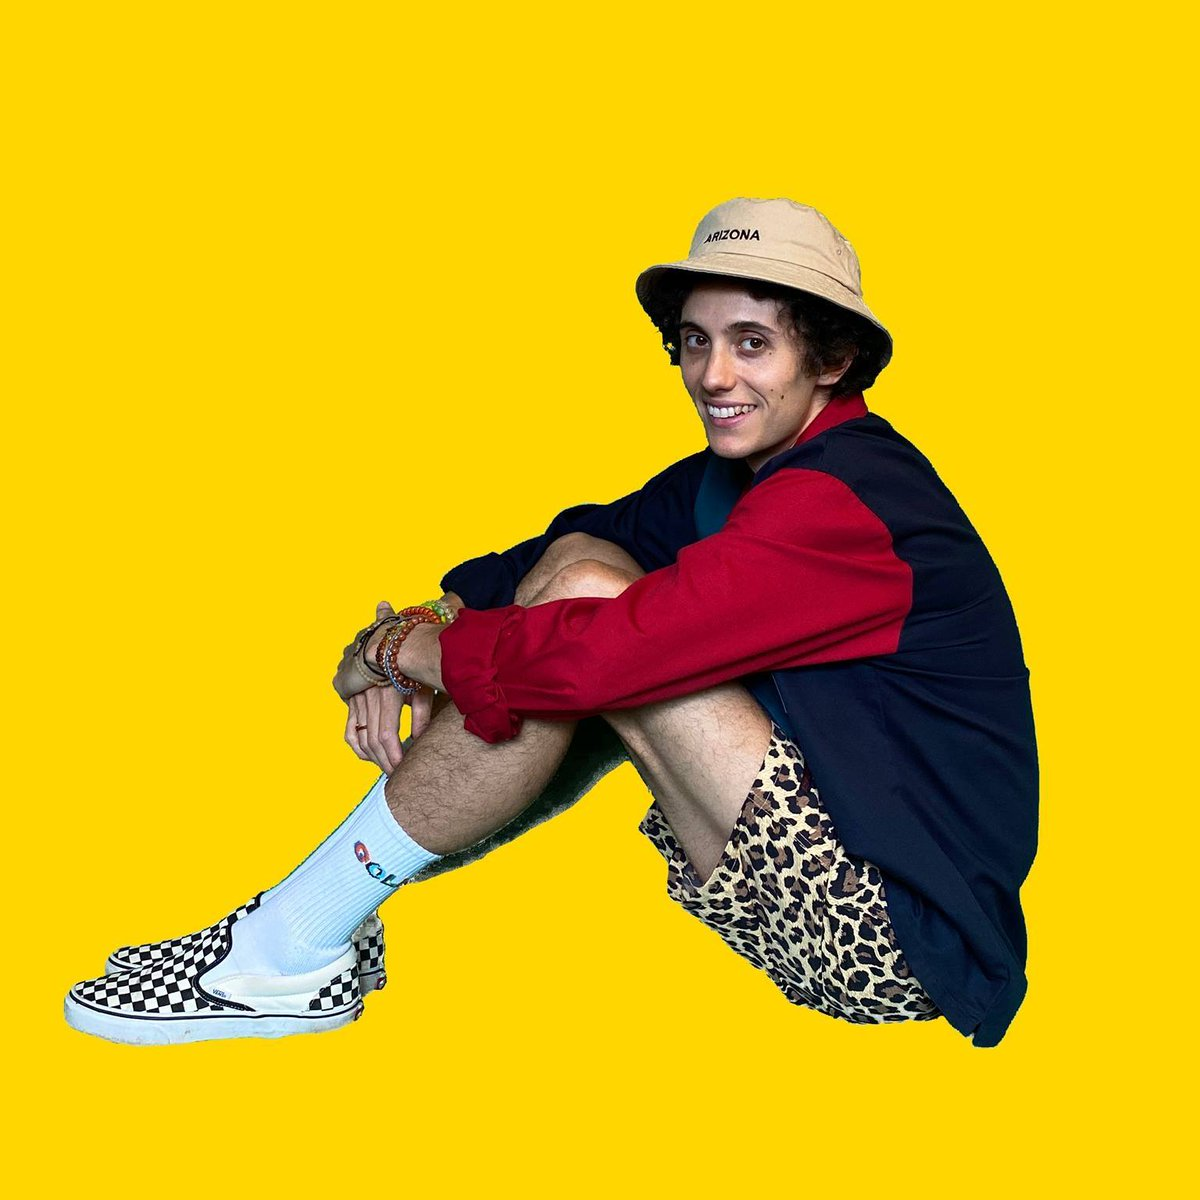 JUST ADDED! @rongallo Live, Outside, Masked and Socially Distant in the @TheBasementNash parking lot on Saturday, November 7th! For tickets and more info visit: bit.ly/3kgJr0x